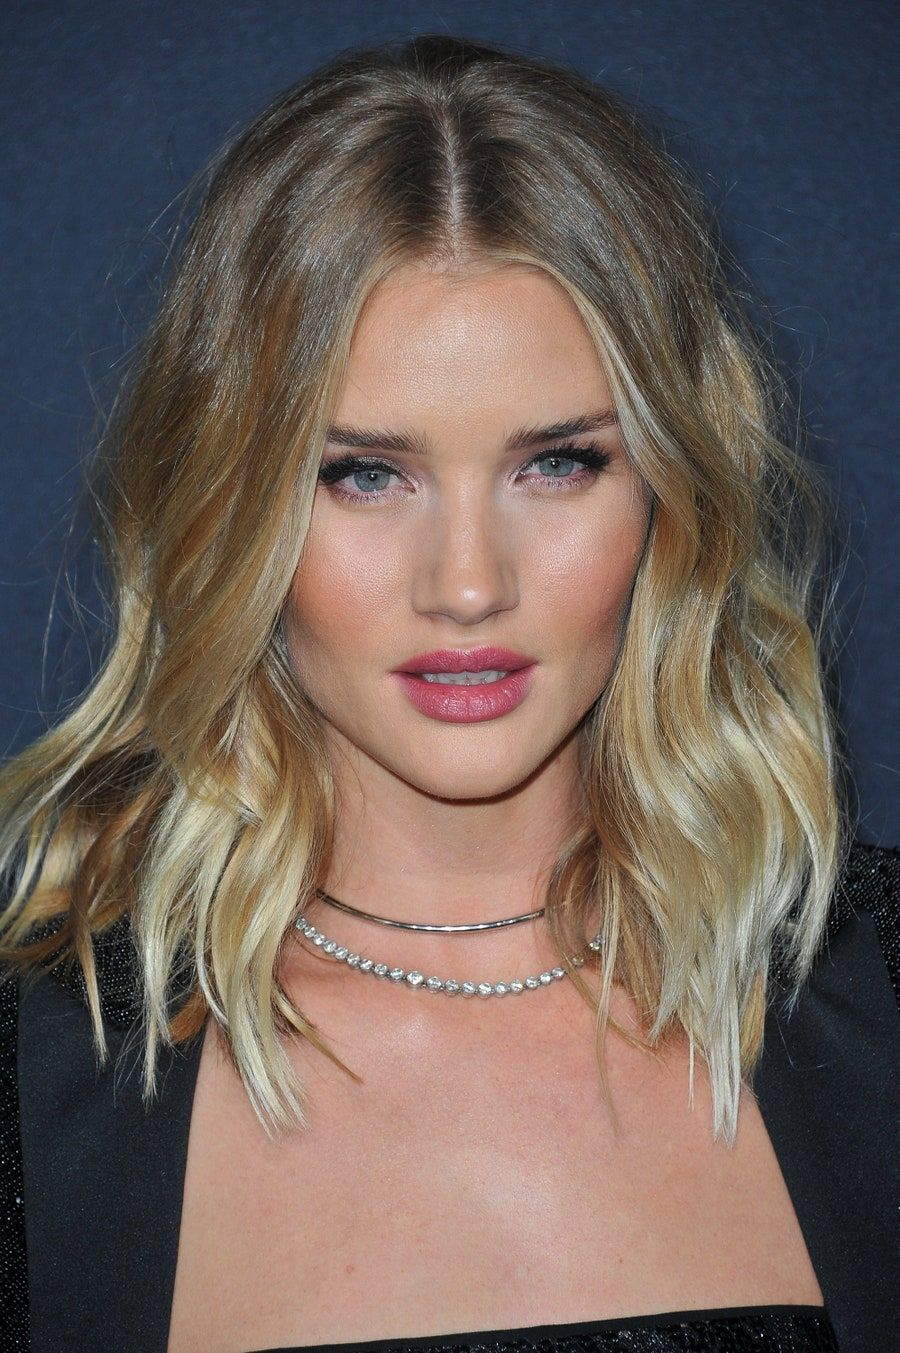 Summer Hairstyles 2017 The Best Summer Haircuts For Every Length And Texture Glamour In 2020 Medium Hair Styles Haircuts For Wavy Hair Summer Haircuts